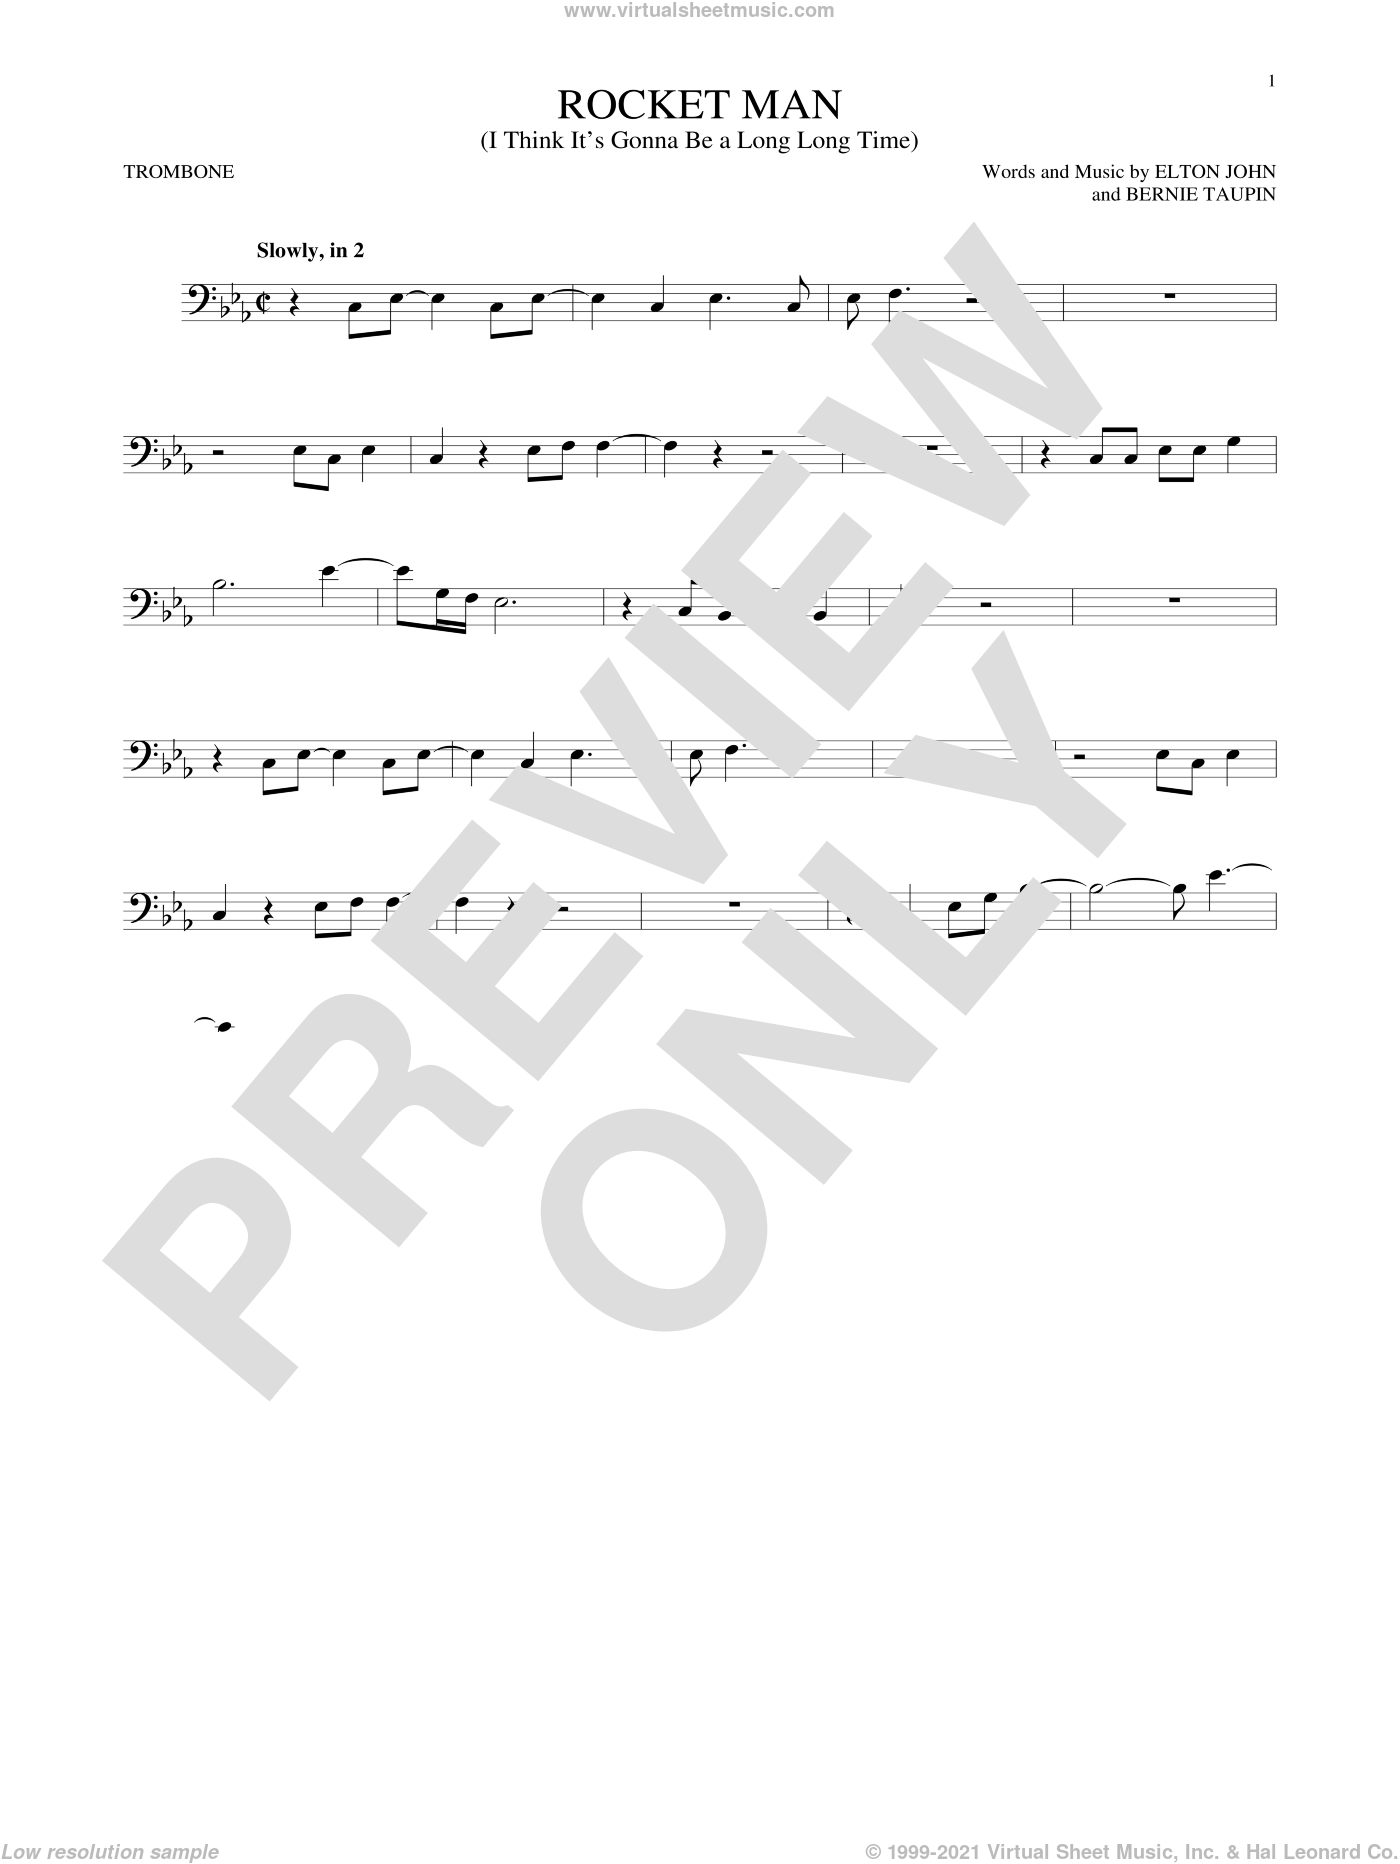 Rocket Man (I Think It's Gonna Be A Long Long Time) sheet music for trombone solo by Elton John and Bernie Taupin, intermediate trombone. Score Image Preview.